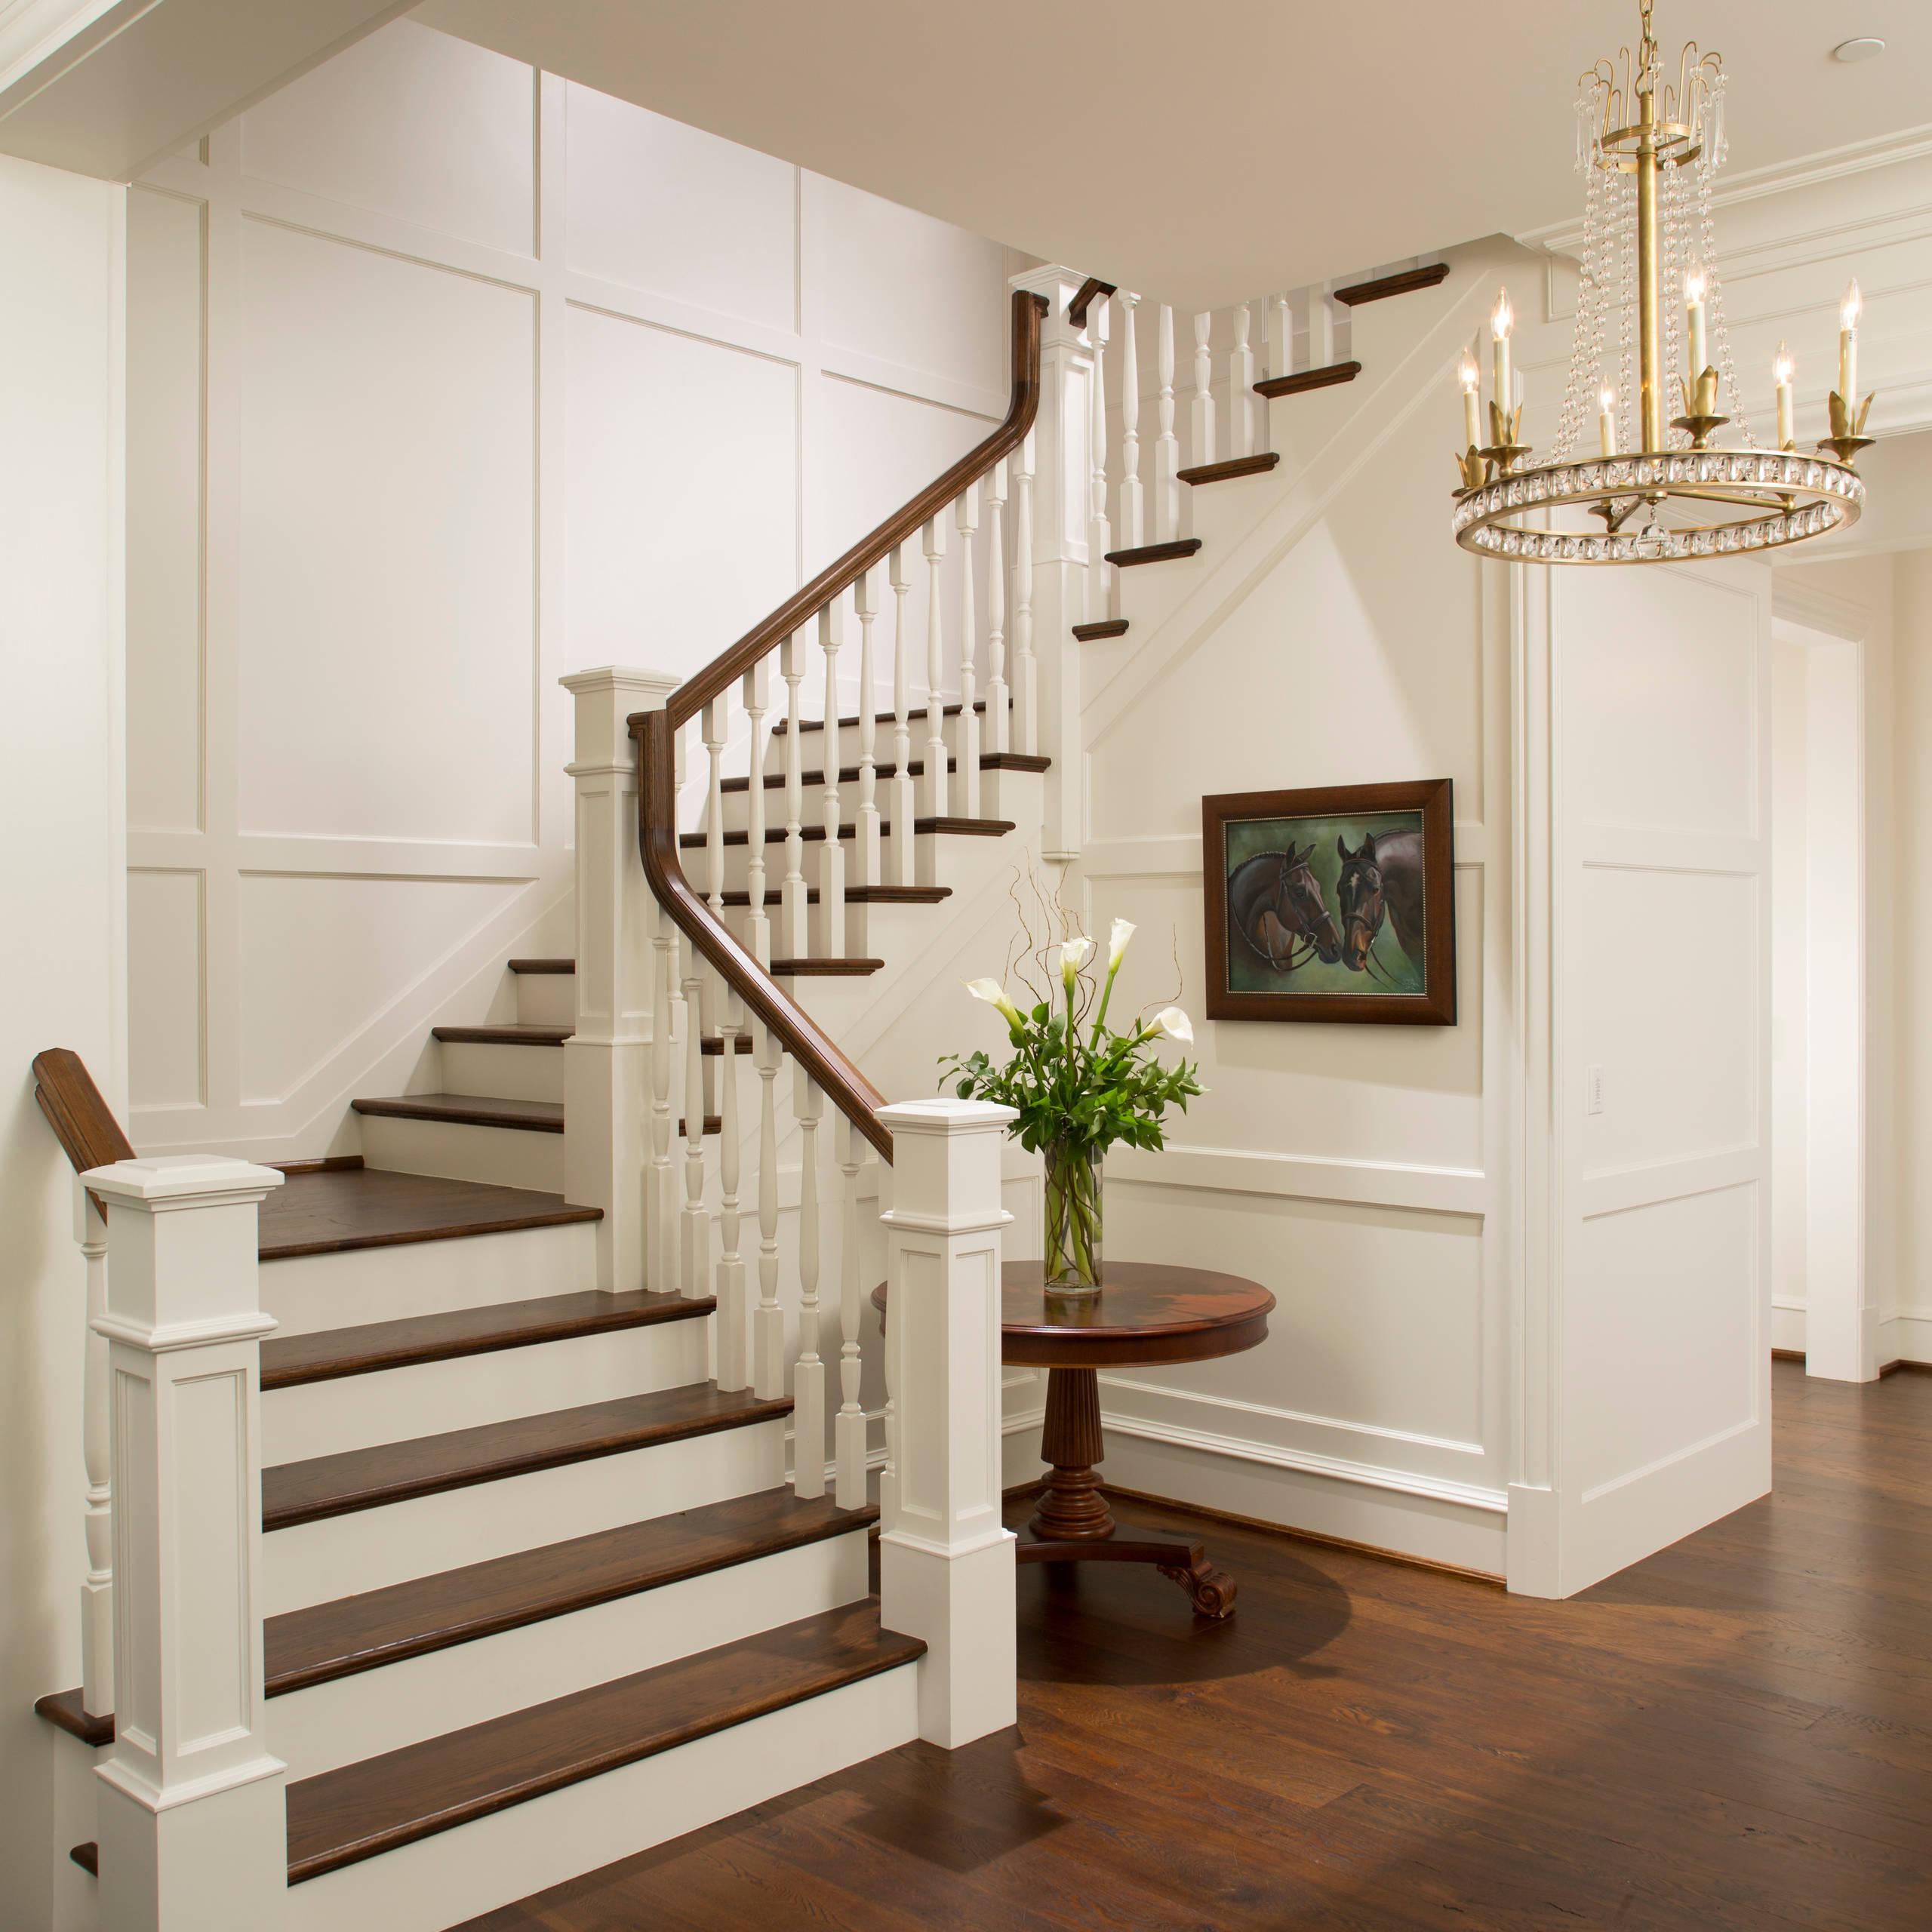 75 Beautiful Traditional Staircase Pictures Ideas May 2021 Houzz